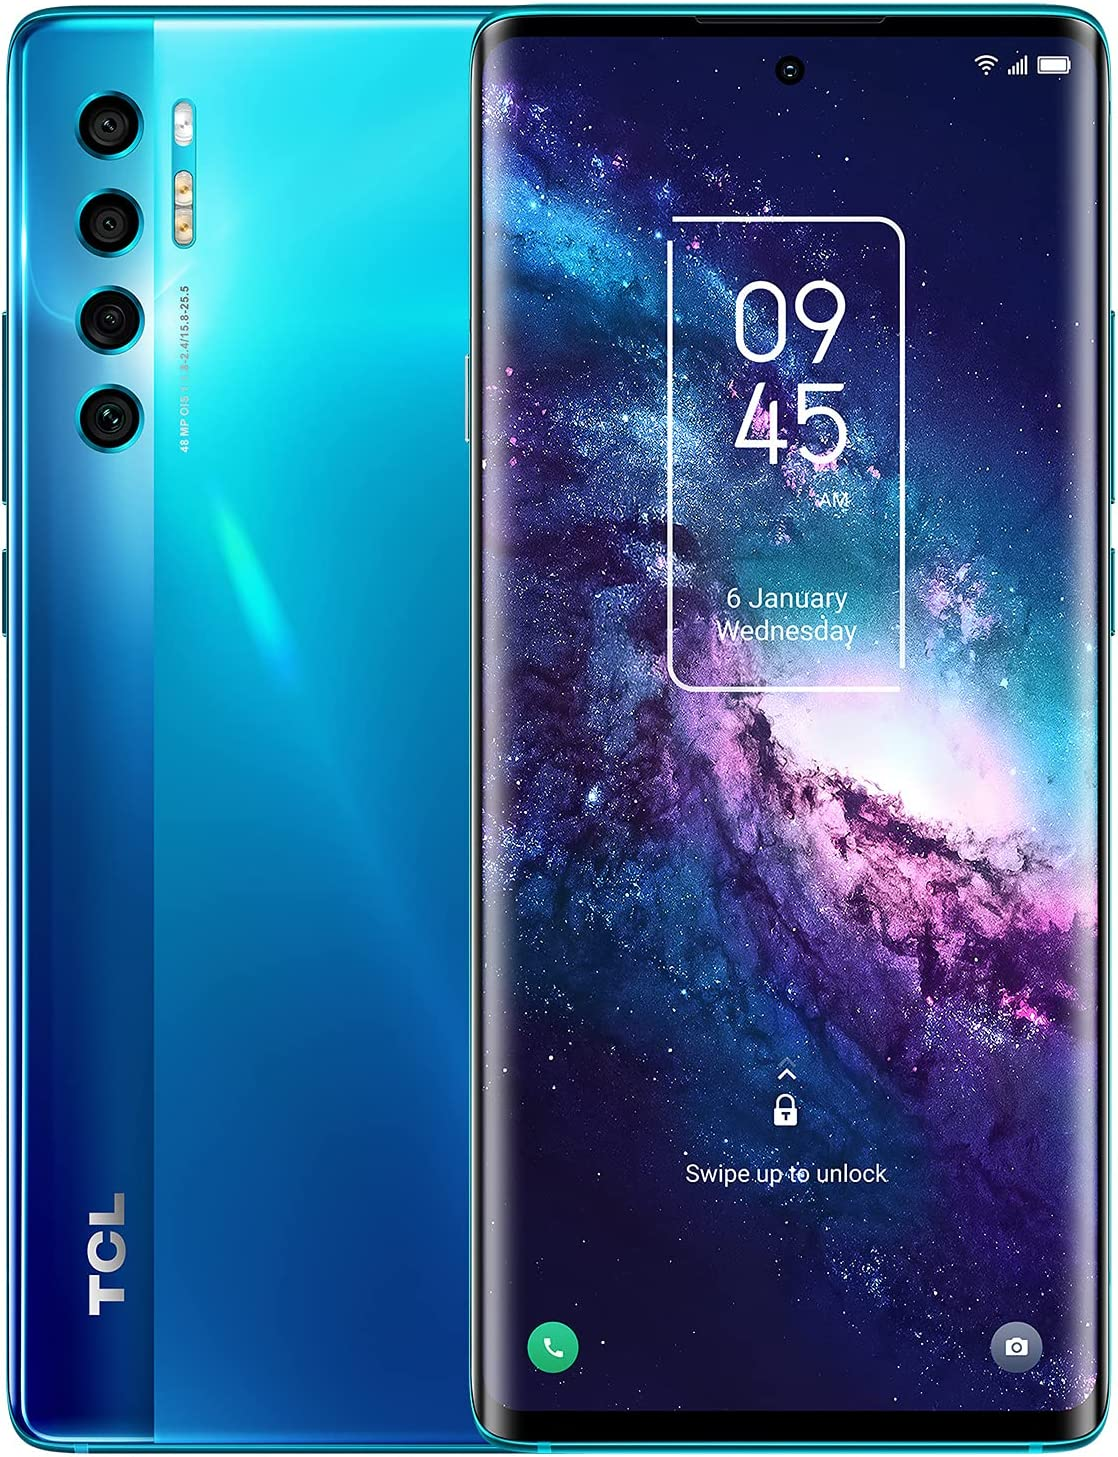 """TCL 20 Pro 5G Unlocked Android Smartphone with 6.67"""" AMOLED FHD+ Display, 48MP OIS Quad Rear Camera System, 6GB+256GB, 4500mAh Battery with Wireless Charging, US 5G Version Cellphone, Marine Blue"""